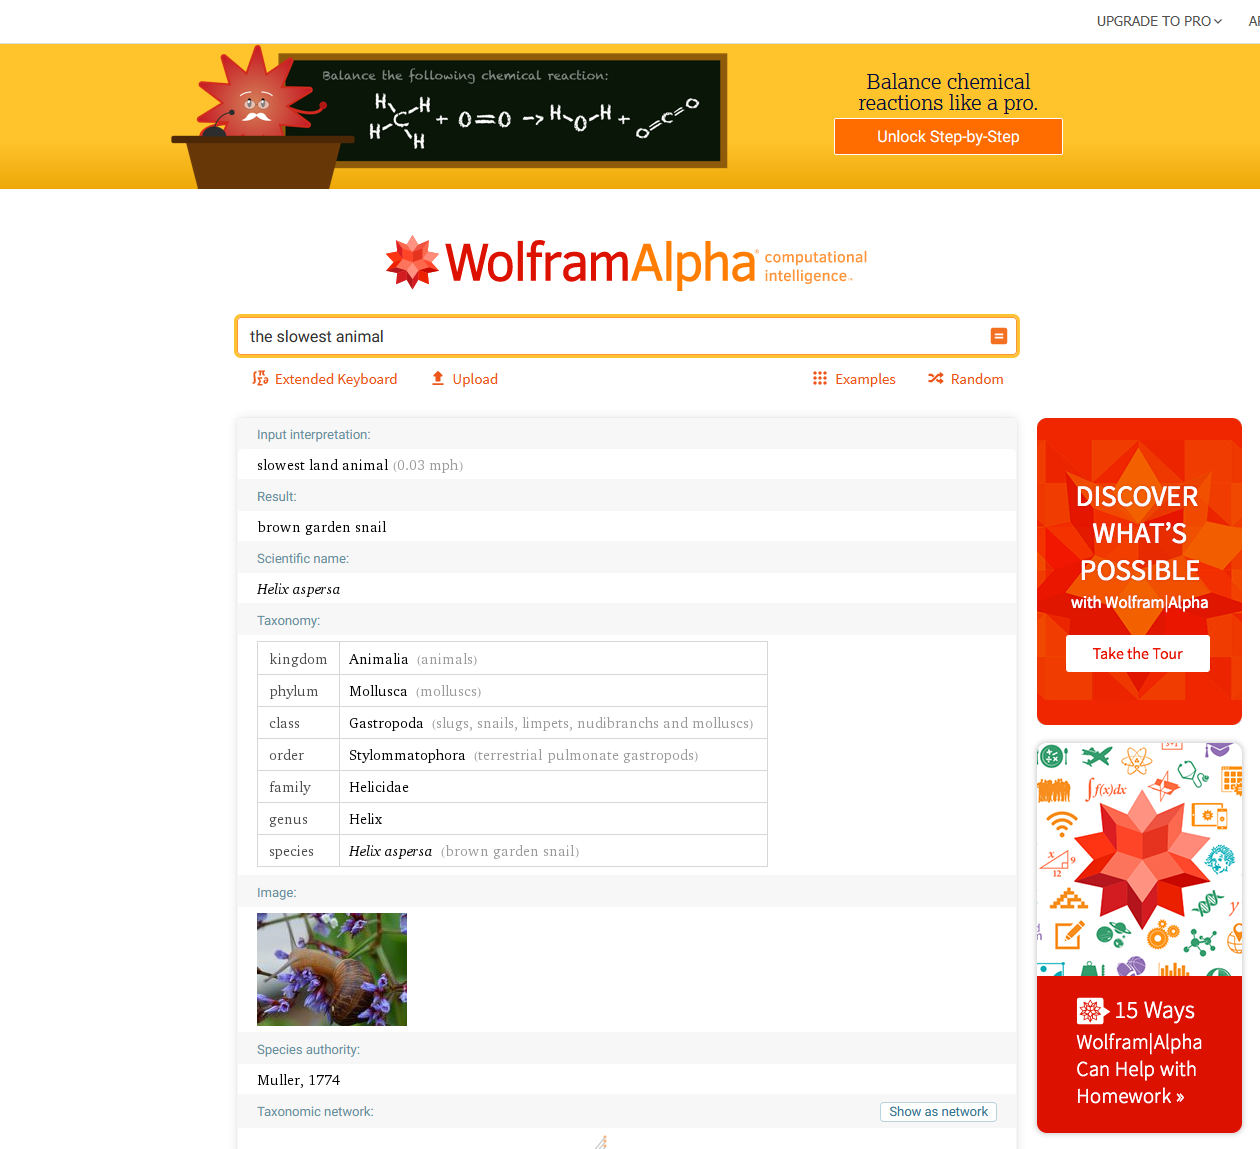 Wolfram Alpha search for slowest animal